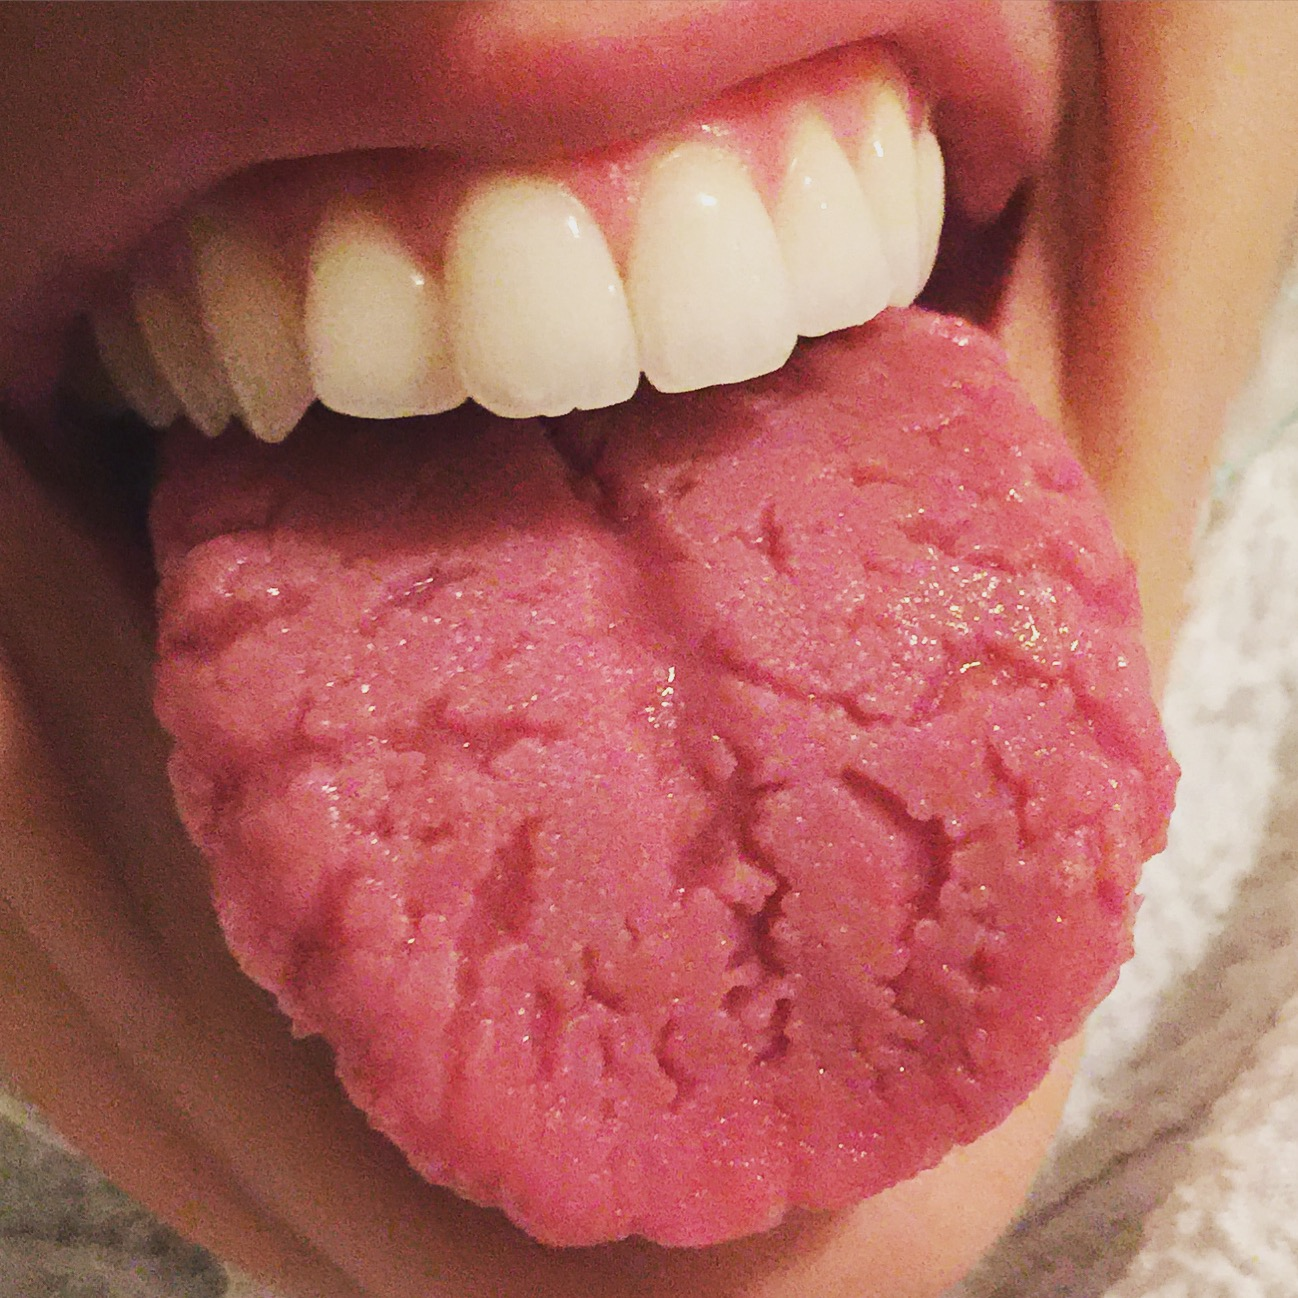 papilloma in mouth nhs sarcoma cancer ppt